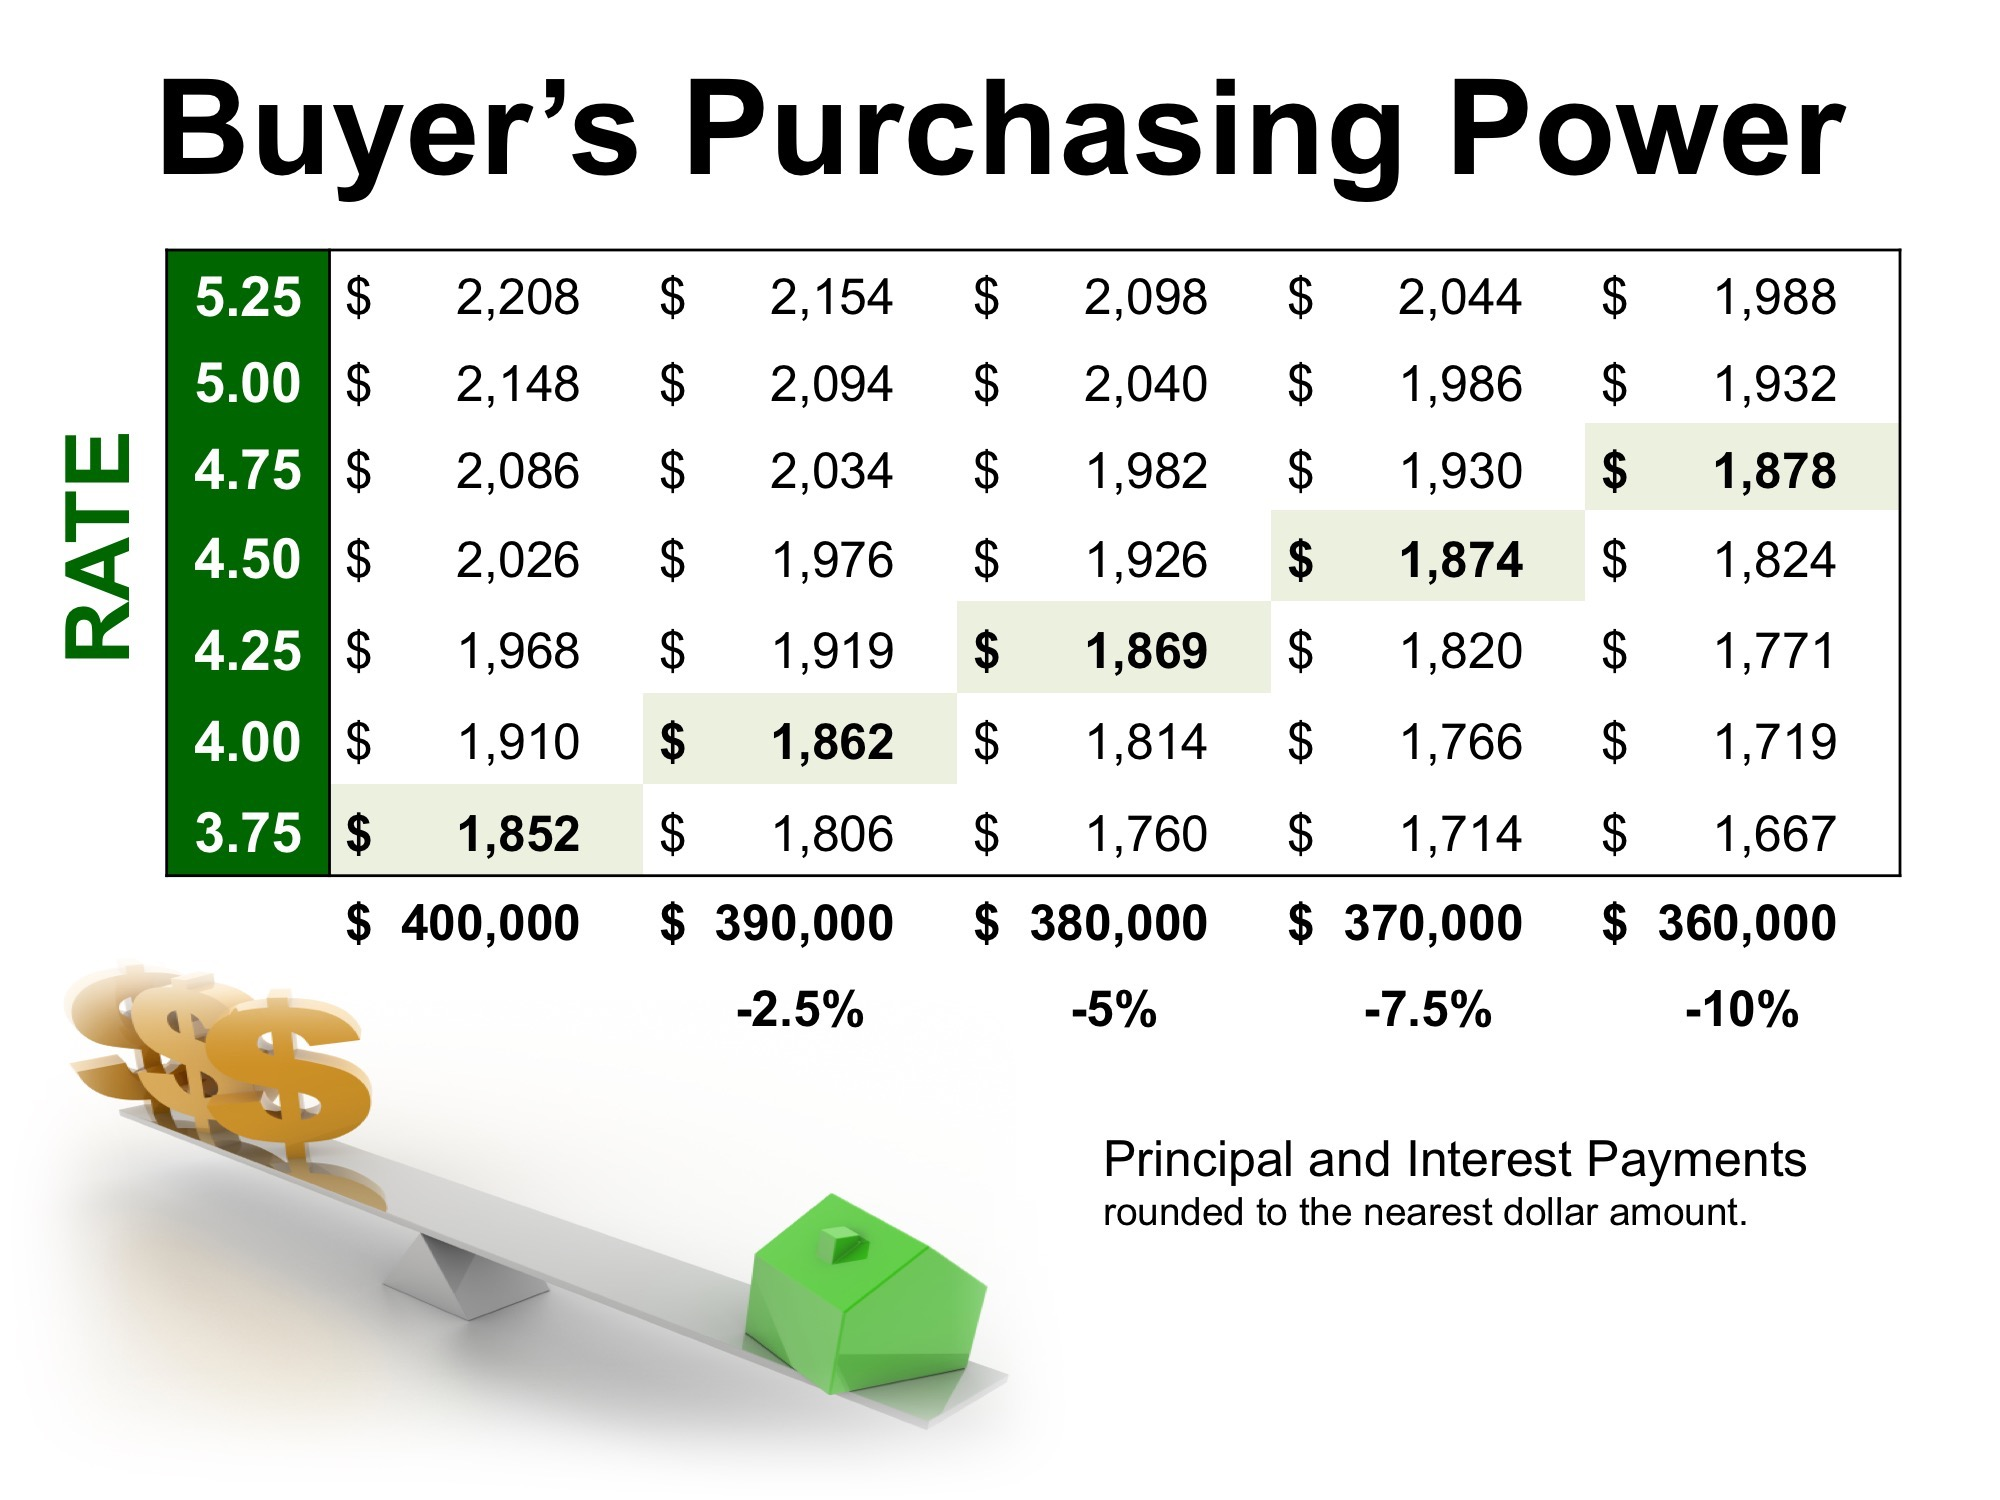 Low Interest Rates Have a High Impact on Your Purchasing Power | MyKCM